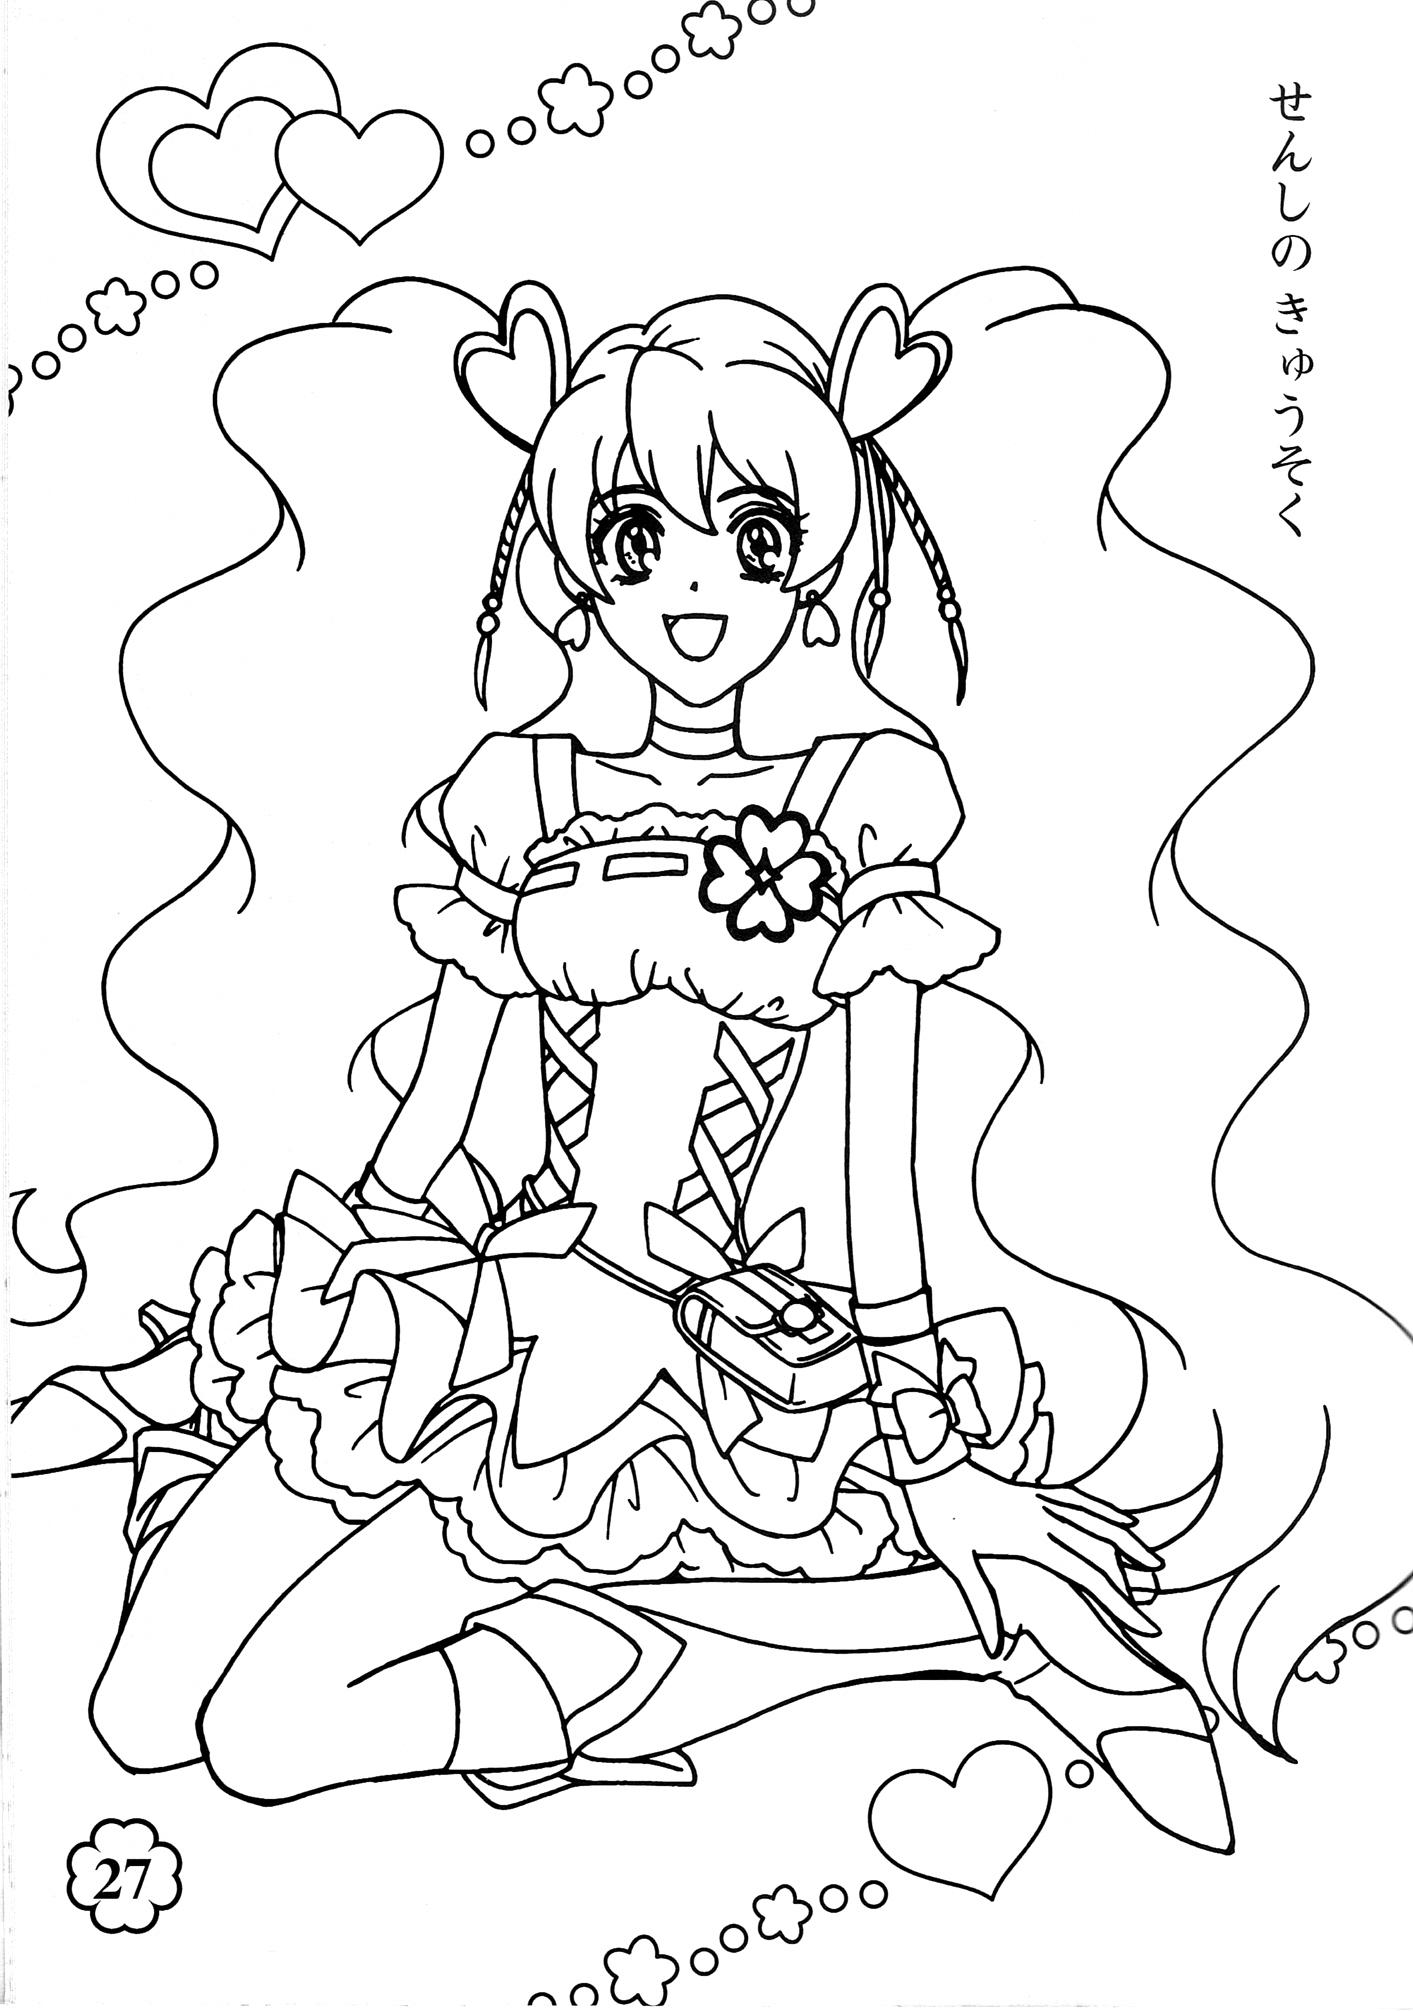 fresh coloring pages - photo#1